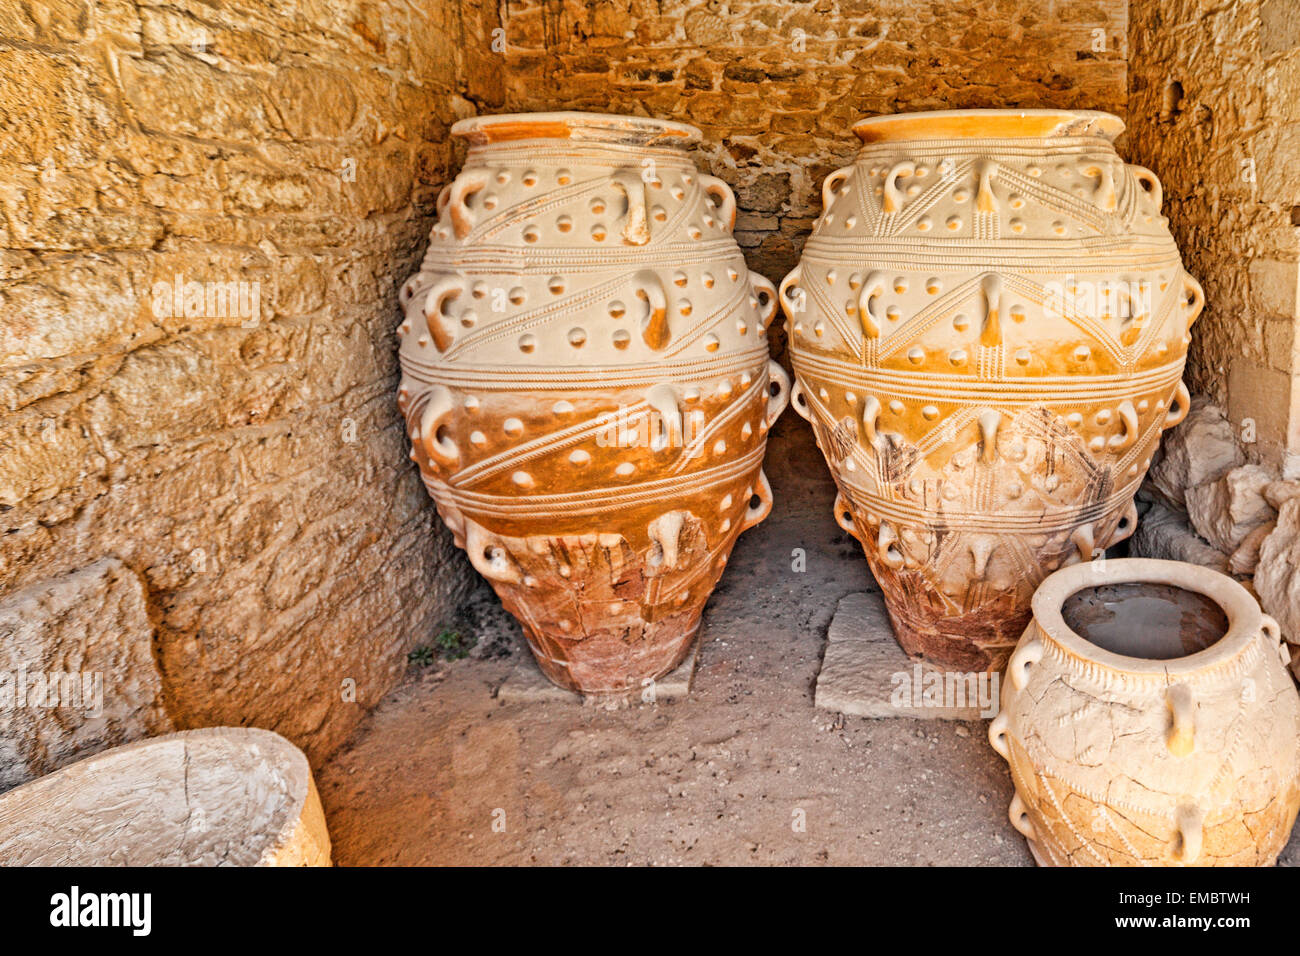 The Magazines of the Giant Pithoi of the Palace in Knossos at Crete, Greece - Stock Image